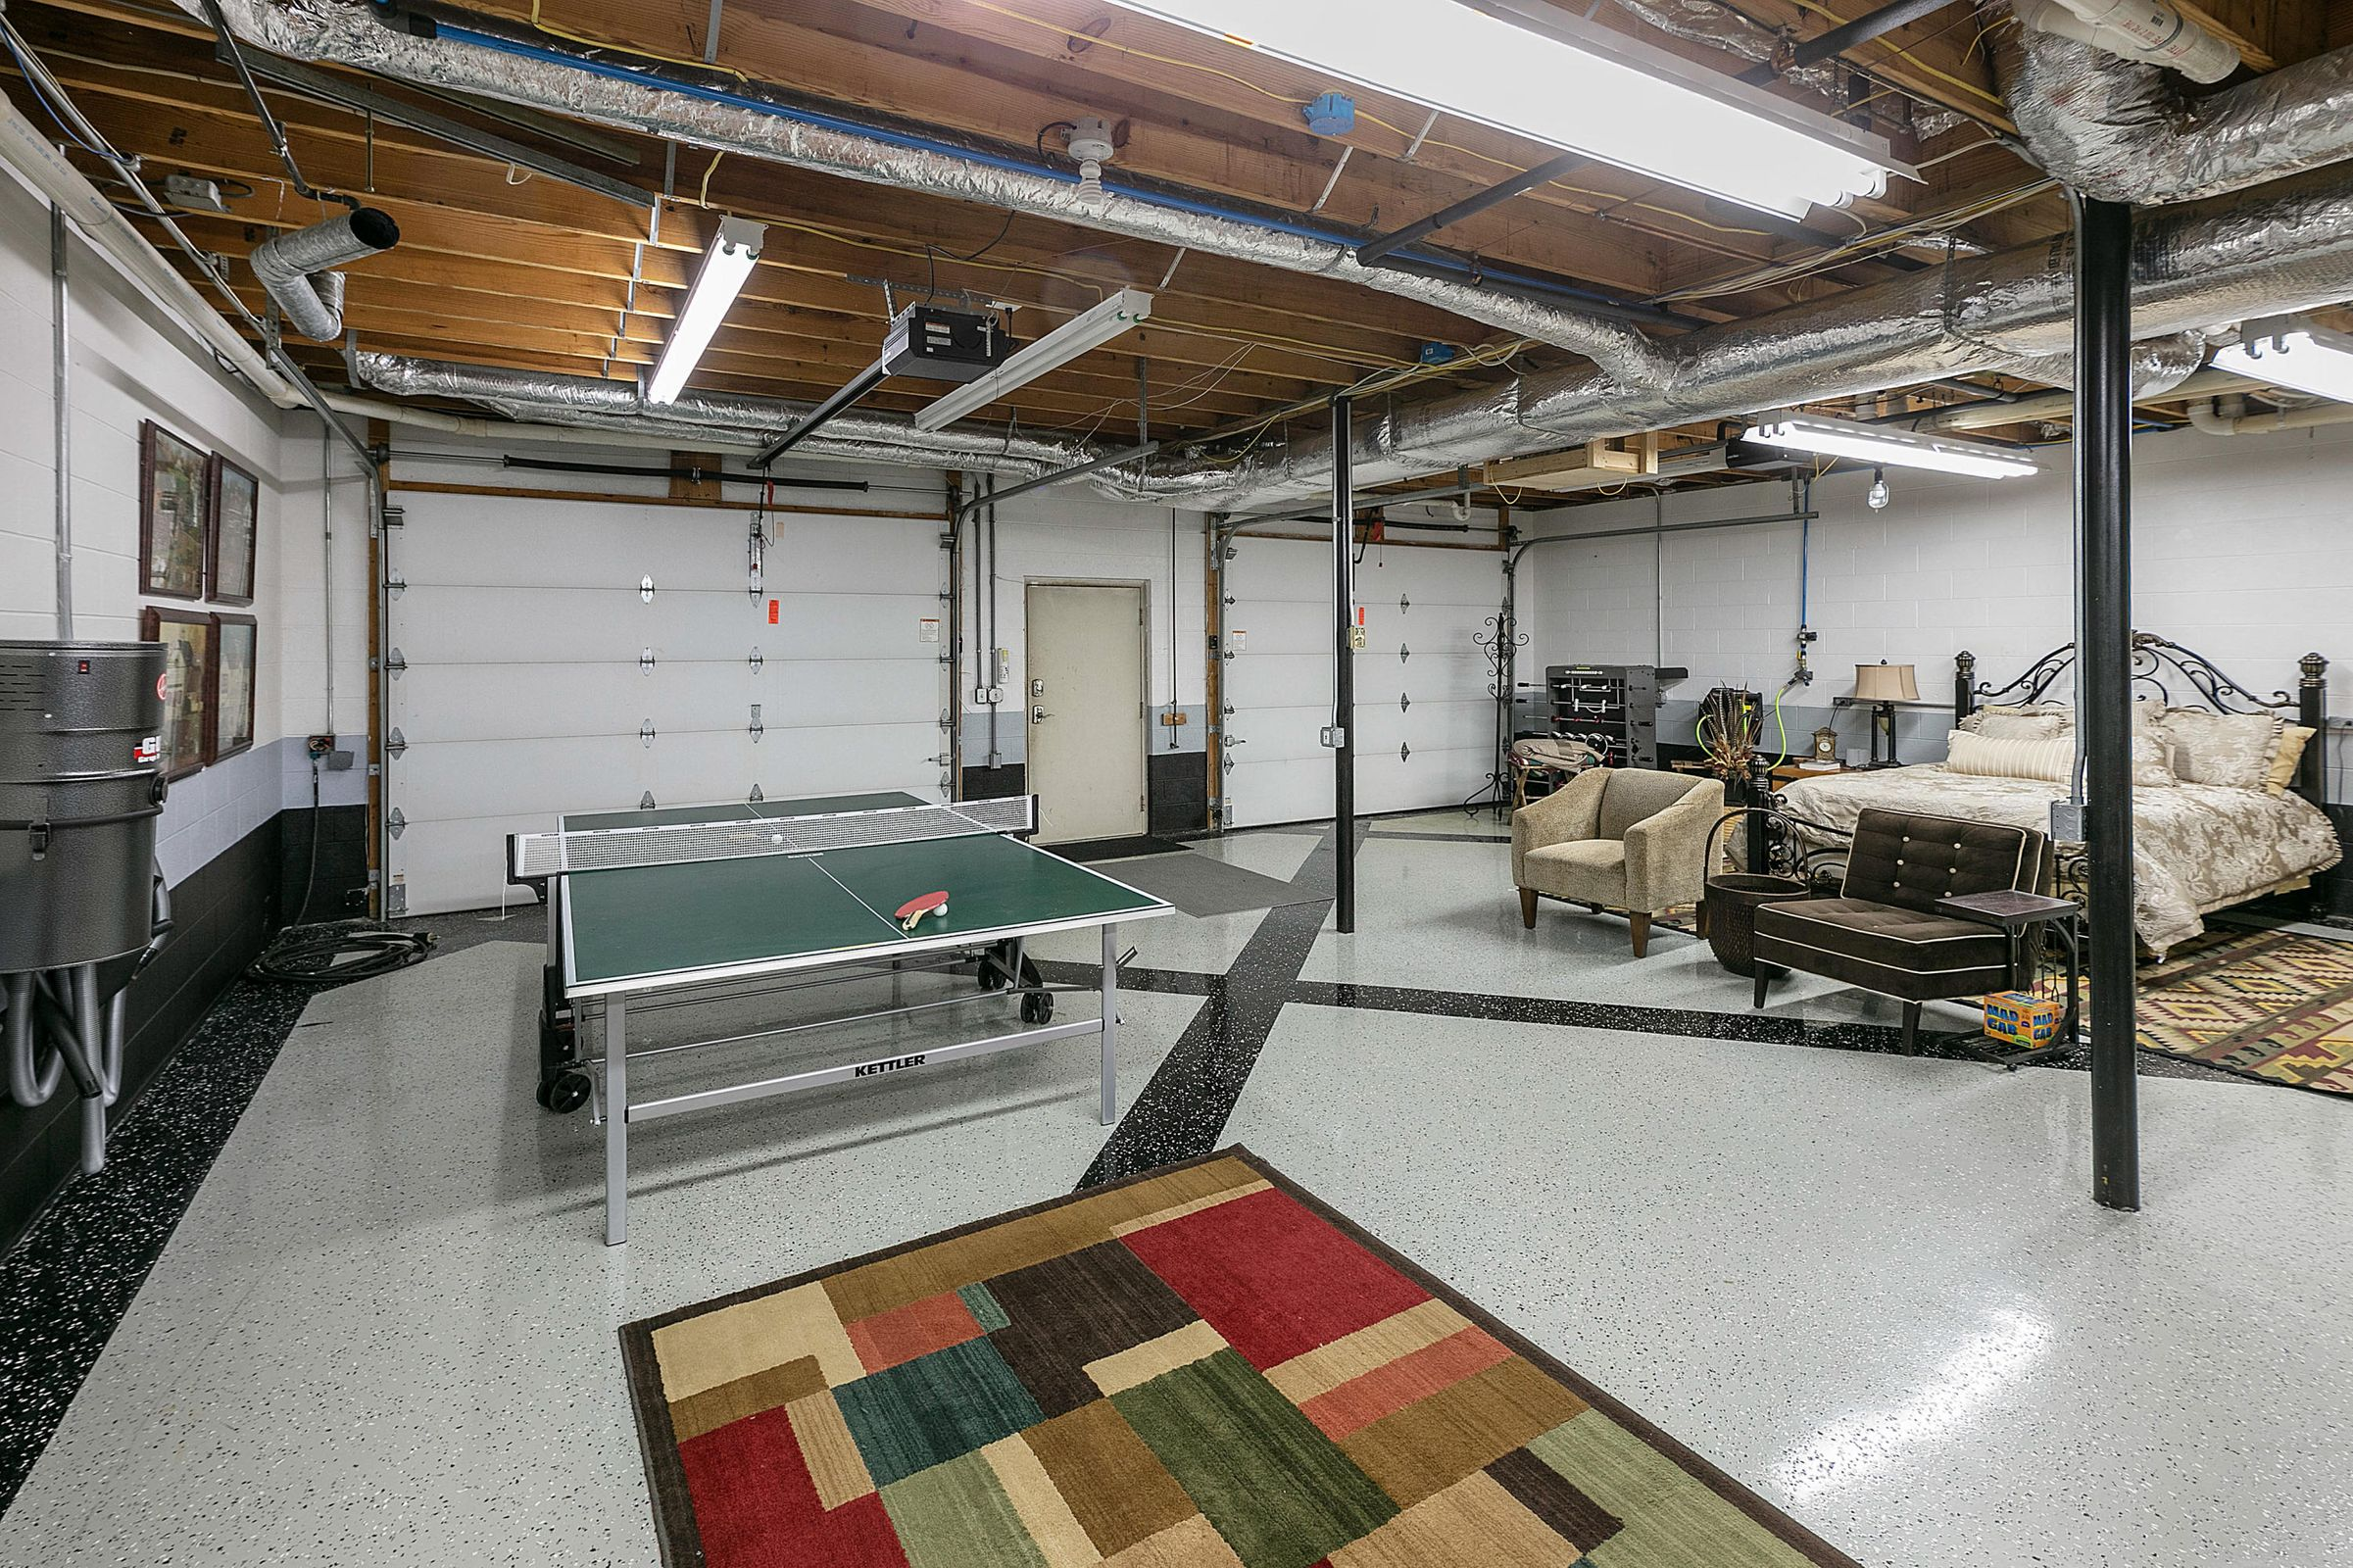 lower level game area